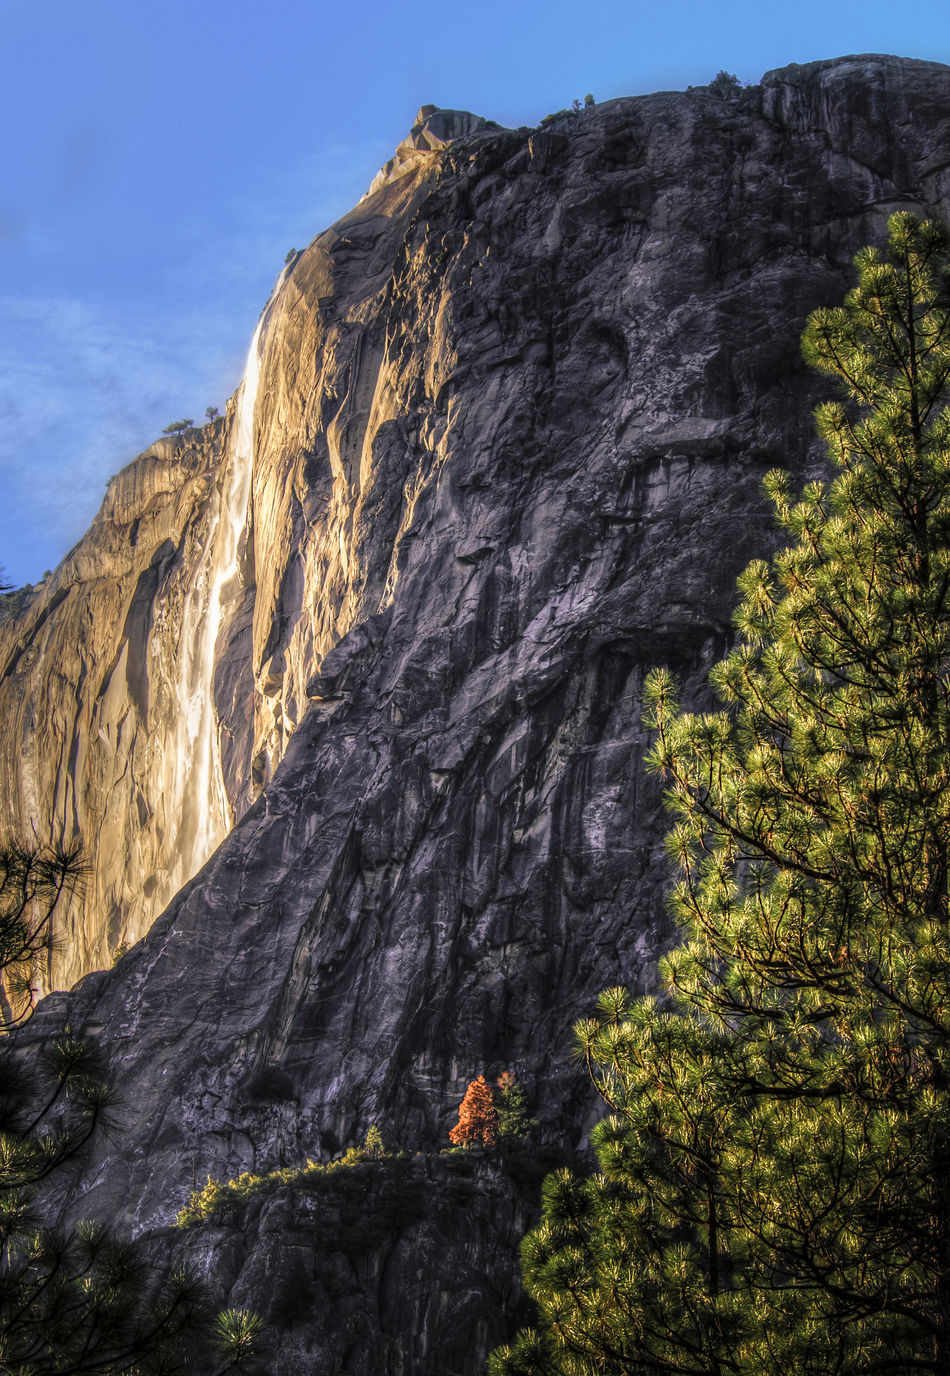 Beauty In Nature Cliff Nature Rock Formation Scenics Tranquil Scene Tranquility Tree Waterfall Yosemite Yosemite National Park Perspective mountains Glowing Waterfall Waterfall Horsetail Falls Day Glow Landscape Glowing Water Fire Fall Lone Red Tree Scale  Small Red Tree 43 Golden Moments Pine Trees